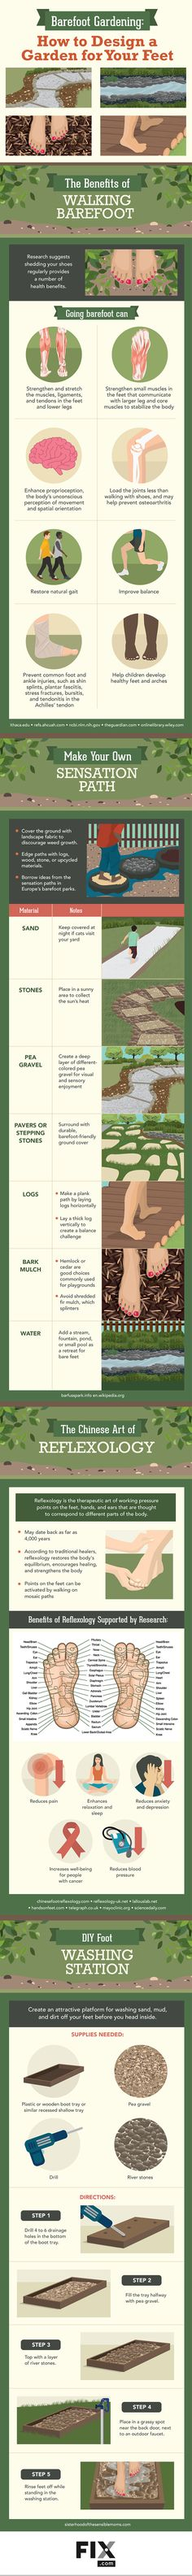 Learn all about how walking barefoot outdoors in your garden can impart great structural benefits to your feet. Start gardening barefoot today!